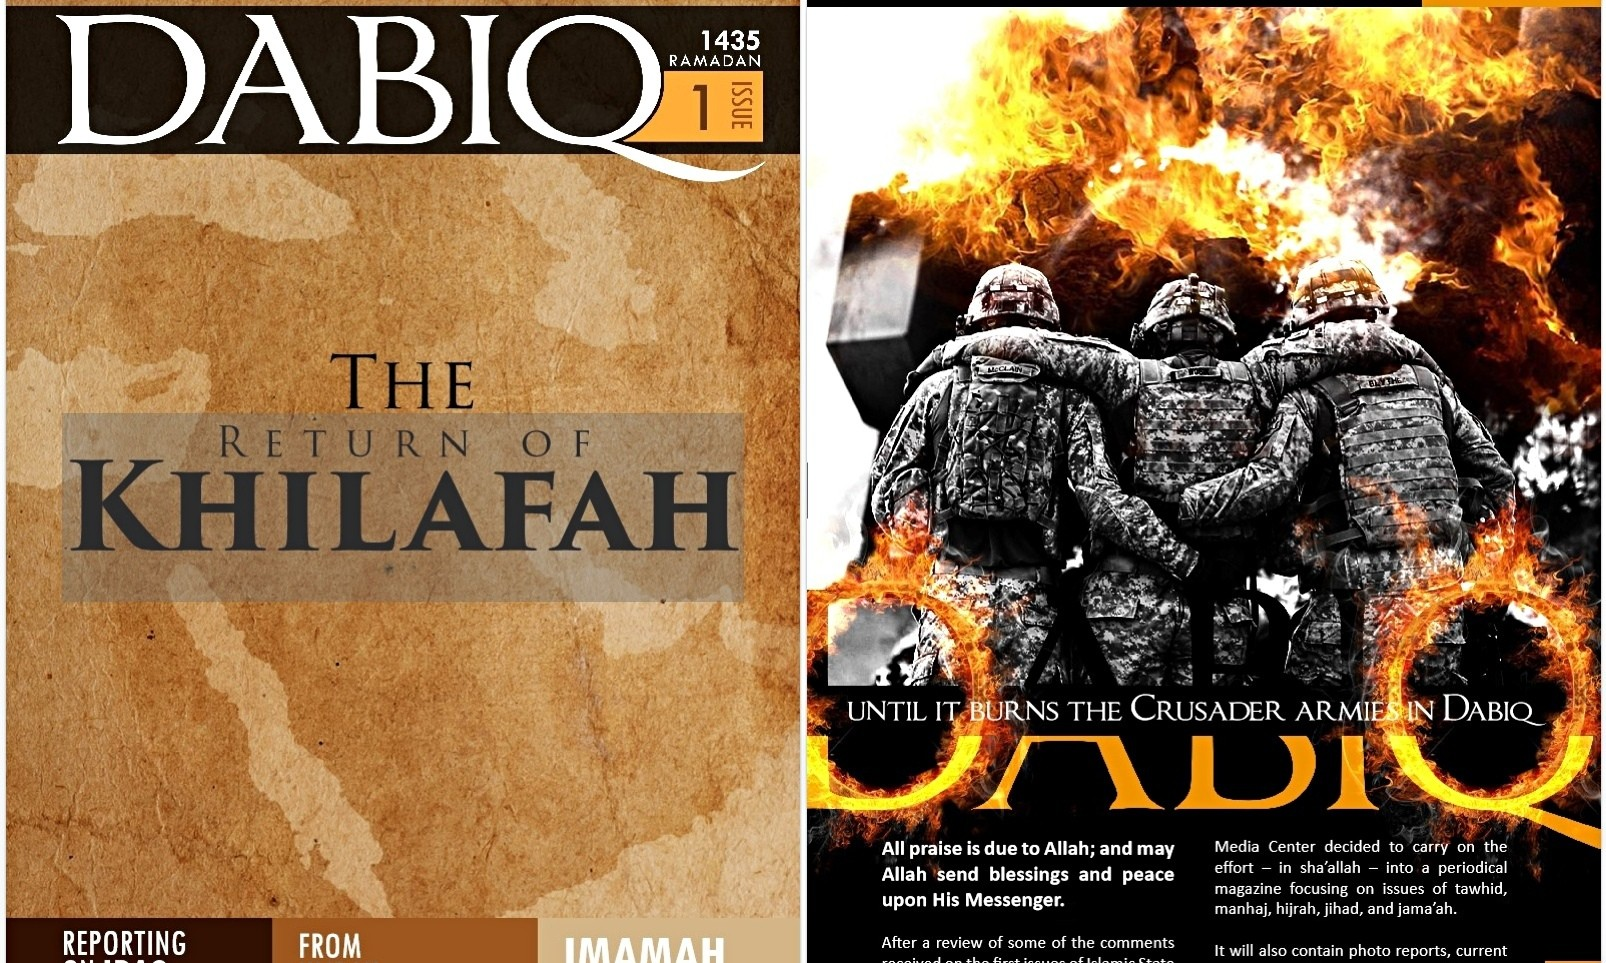 To Islamic State, Dabiq is important – but it's not the end of the world